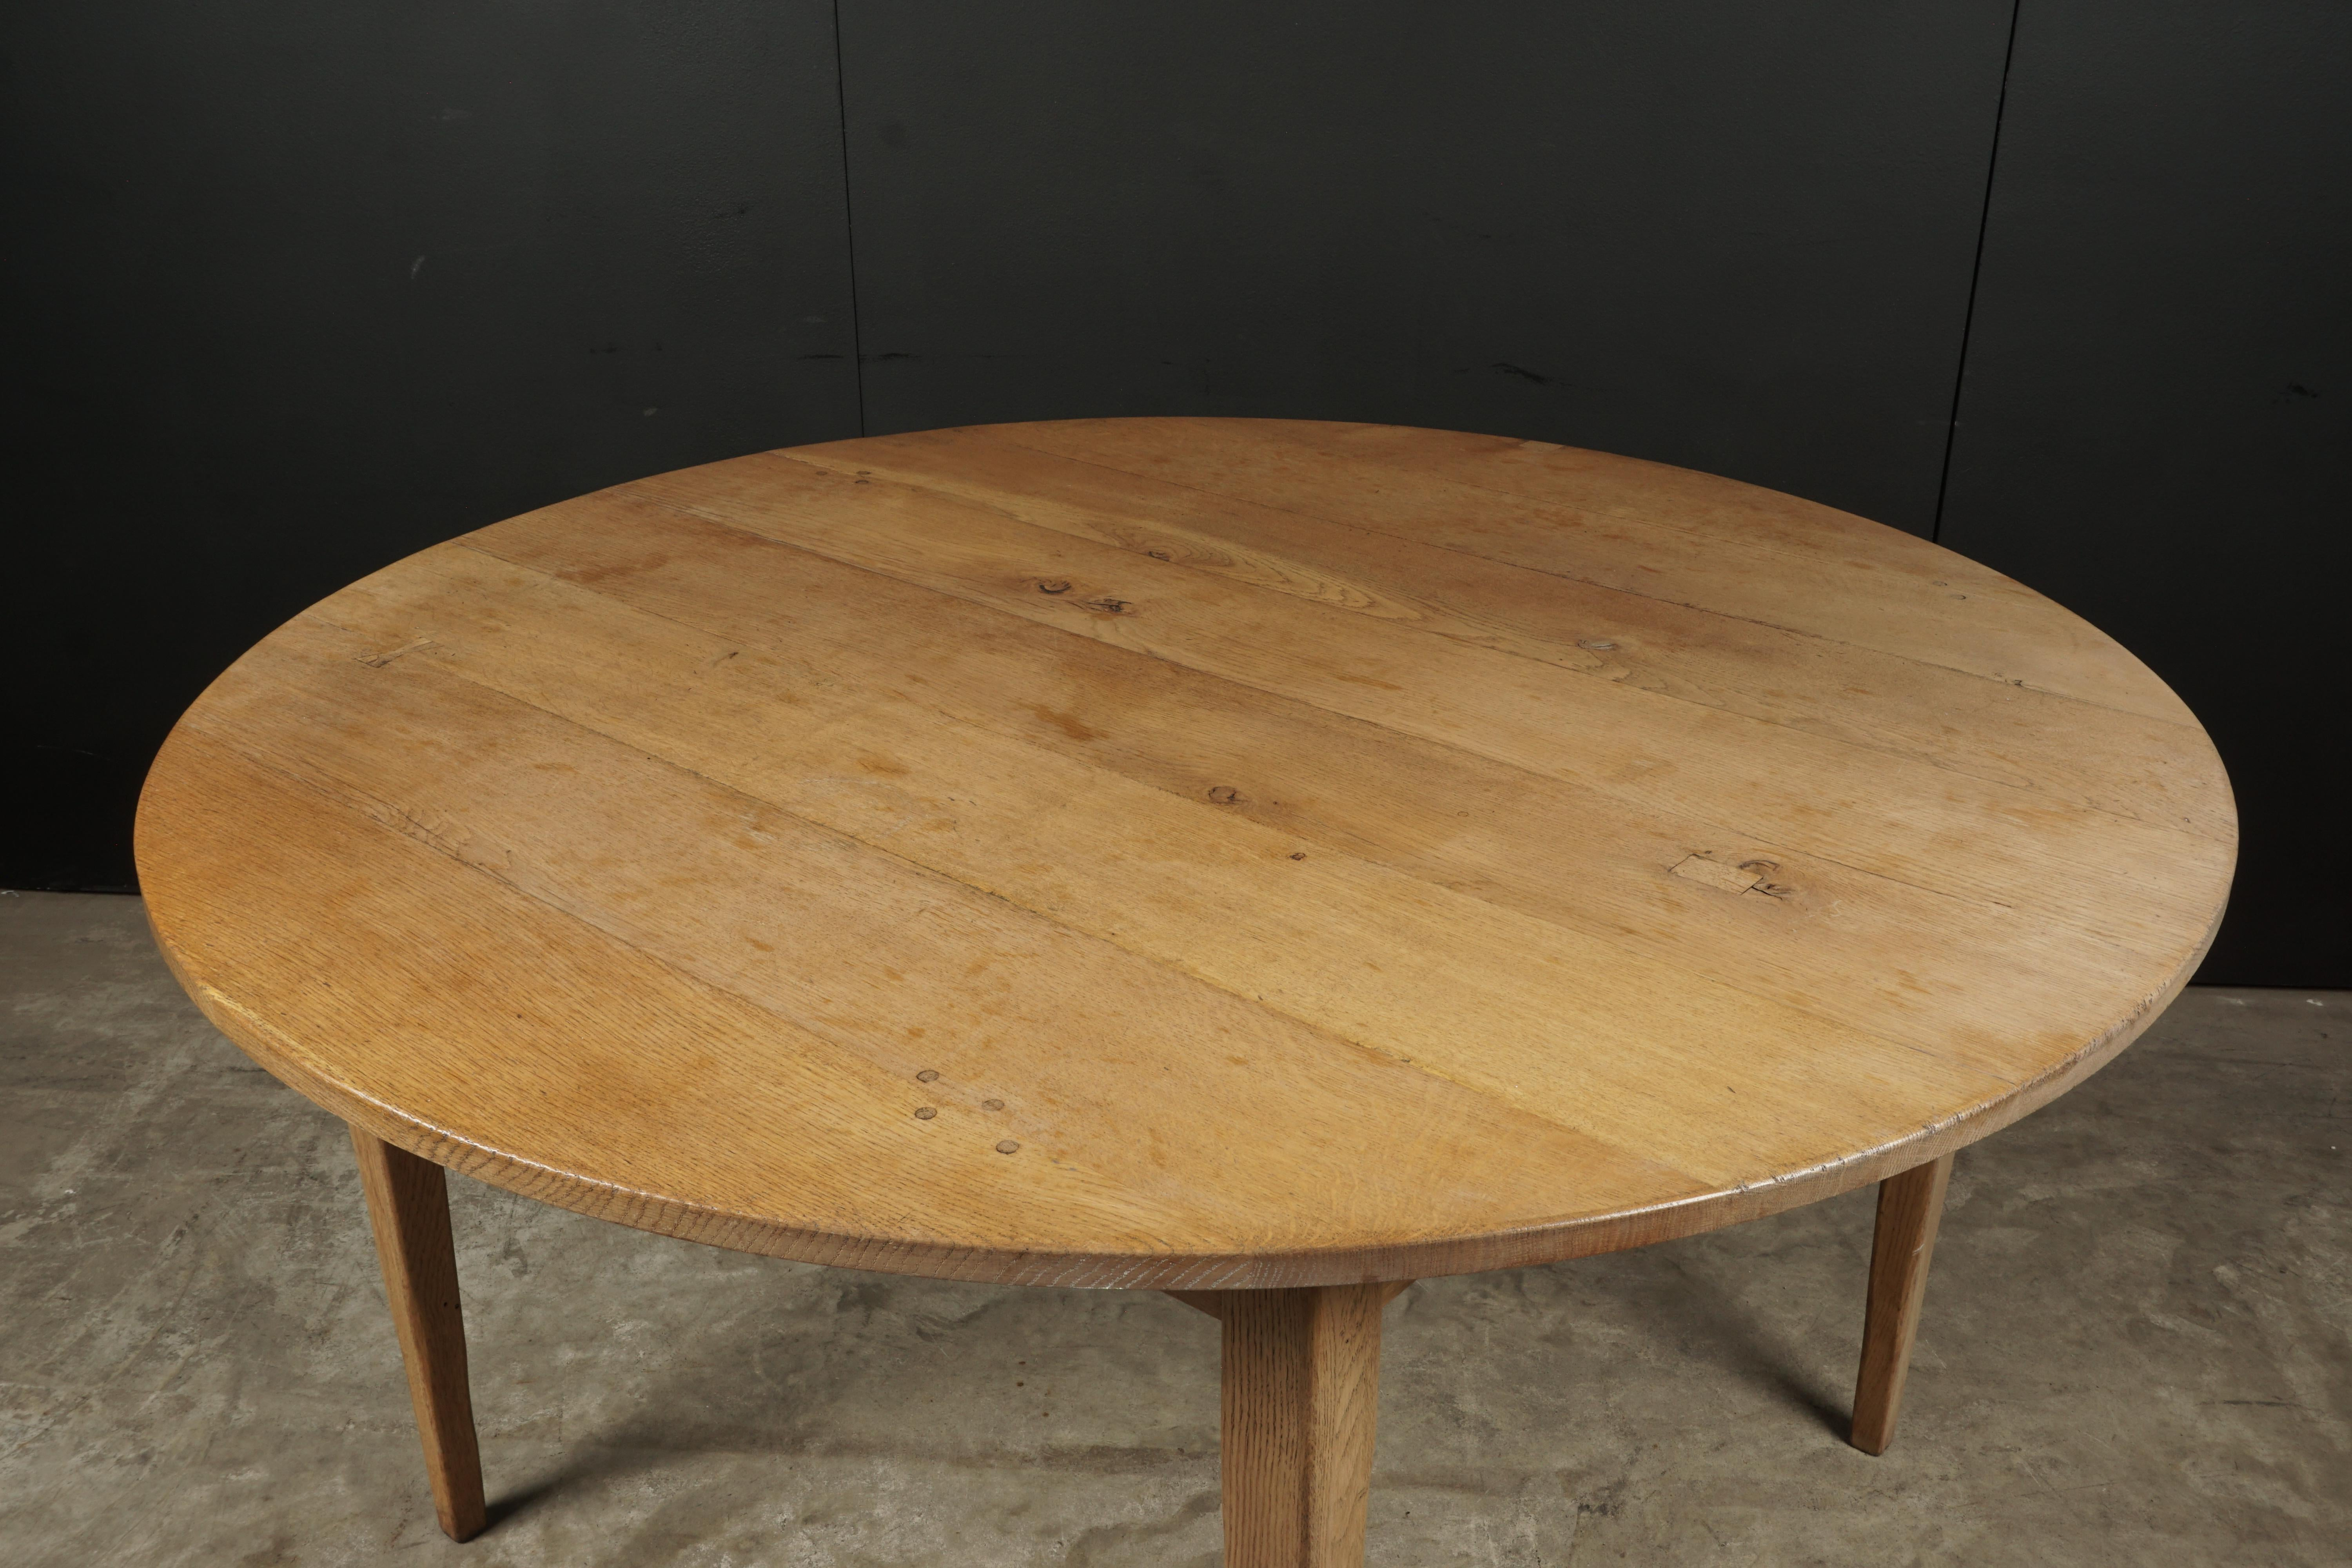 Round Oak Dining Table Unusual Round Oak Dining Table In Oak From Denmark Circa 1970